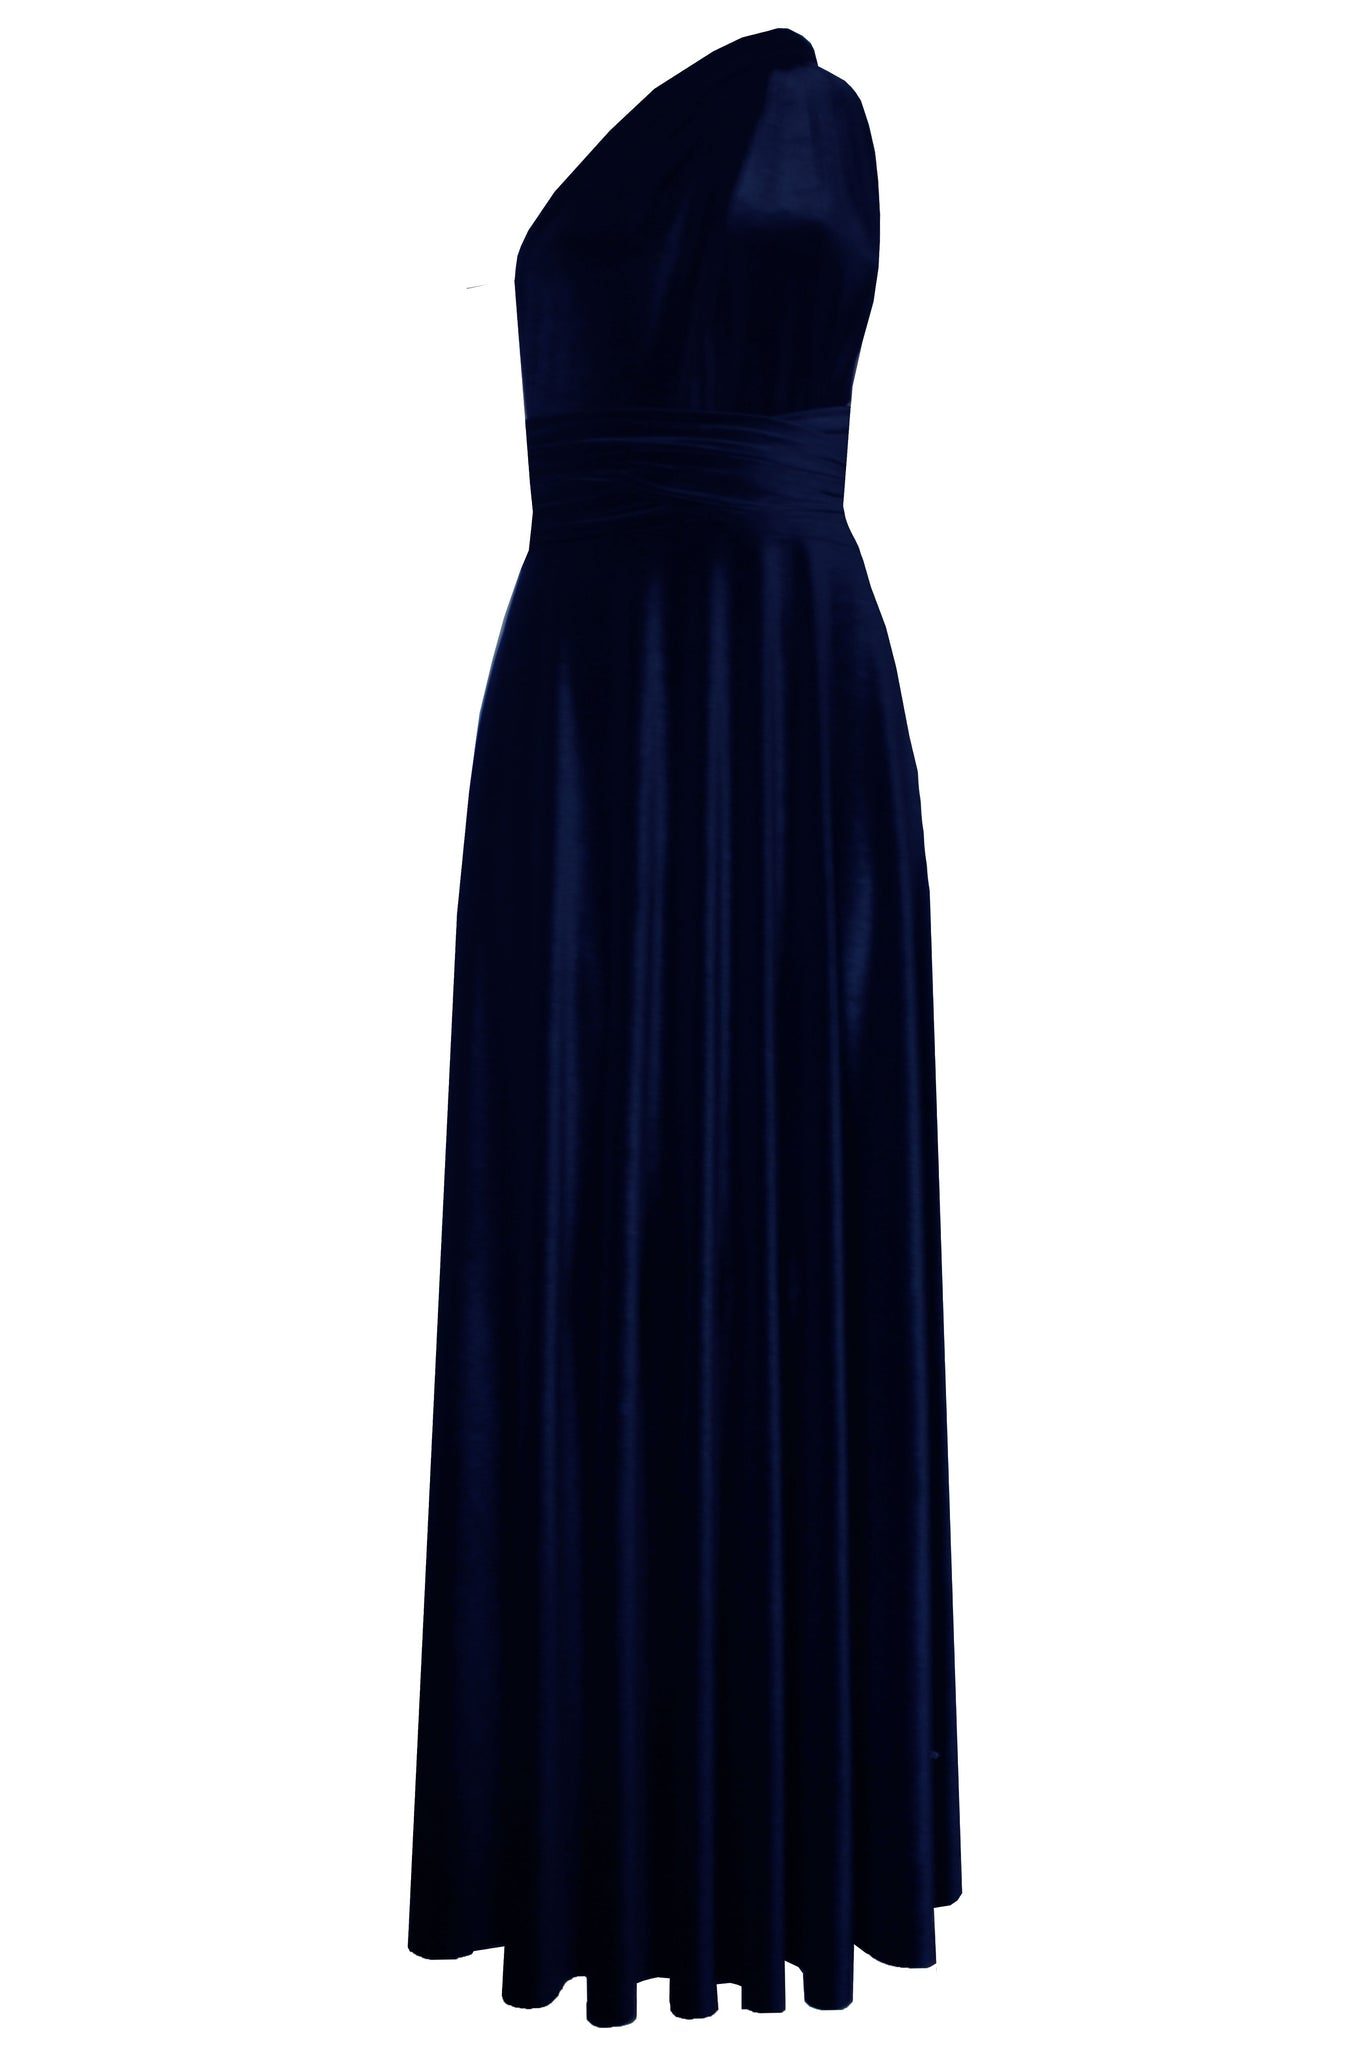 Convertible velvet dress Bridesmaids infinity dress Navy blue multi wrap dress Long plus size prom gown Formal maternity dress XS-5XL